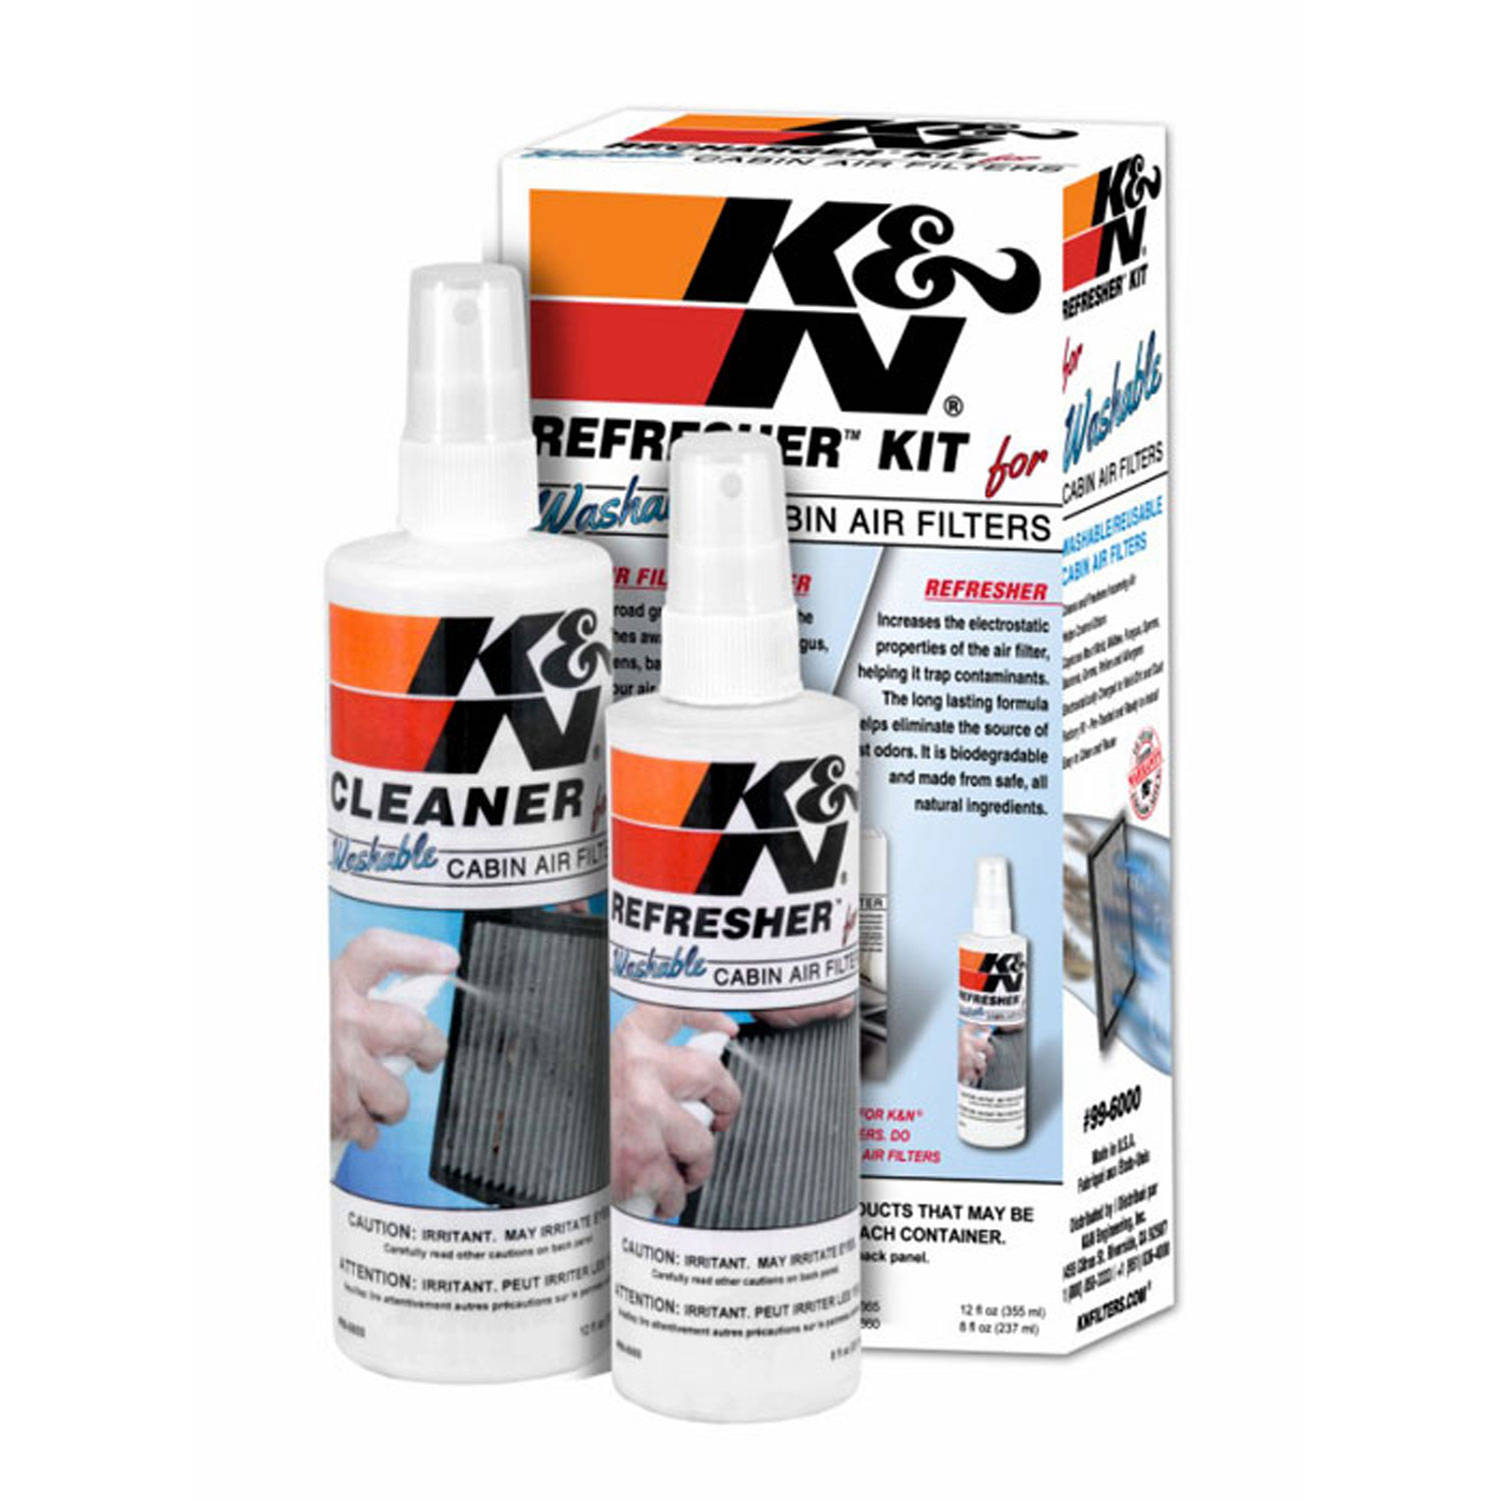 K&N Cabin Filter Cleaning Care Kit, #99-6000